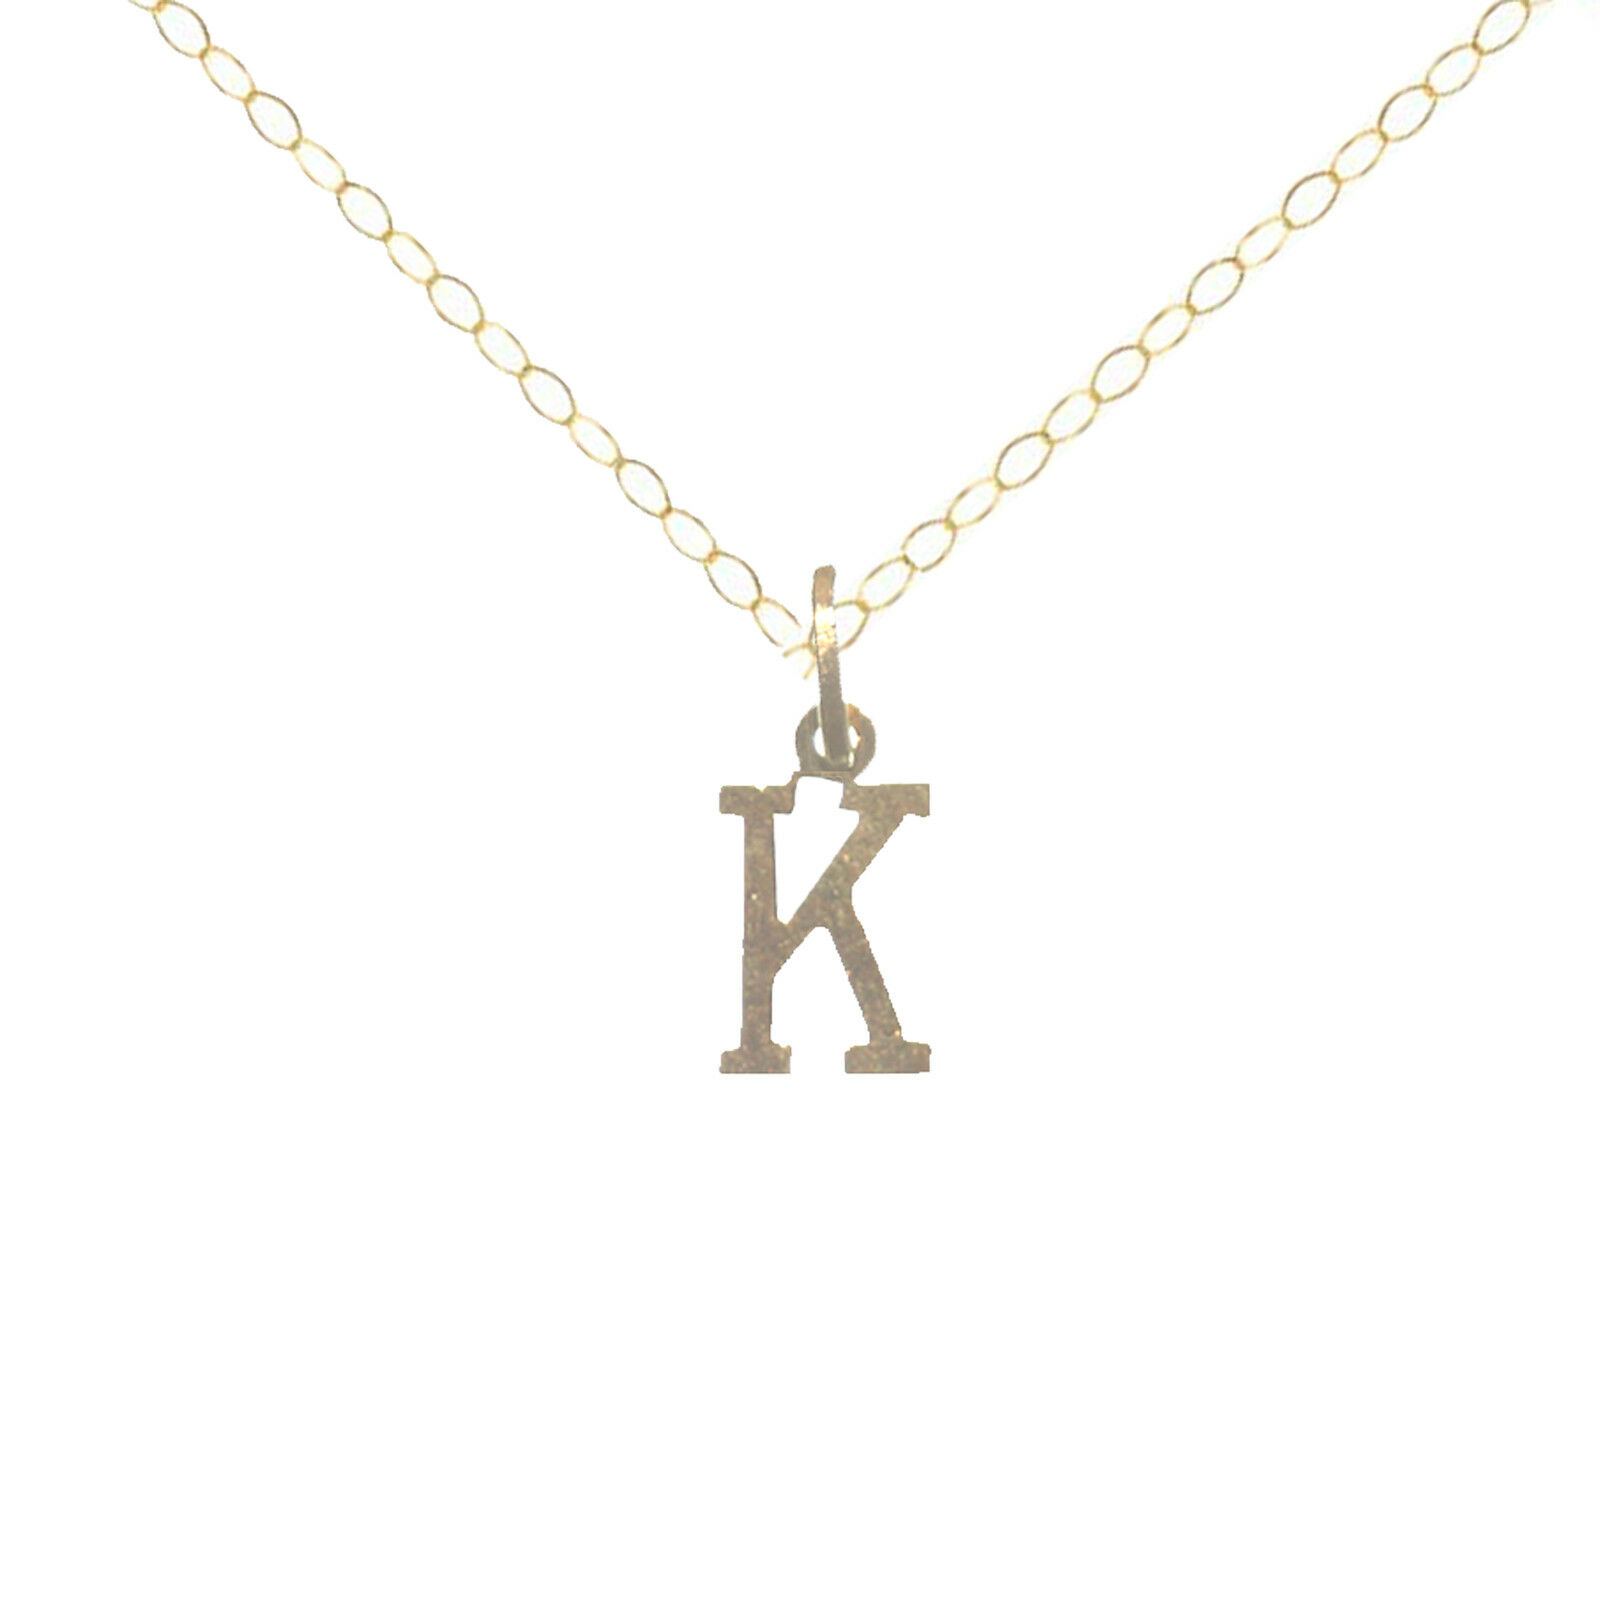 Solid 9ct Yellow gold Initial  K  10.5 mm Tall with gold Trace Chain in Gift Box